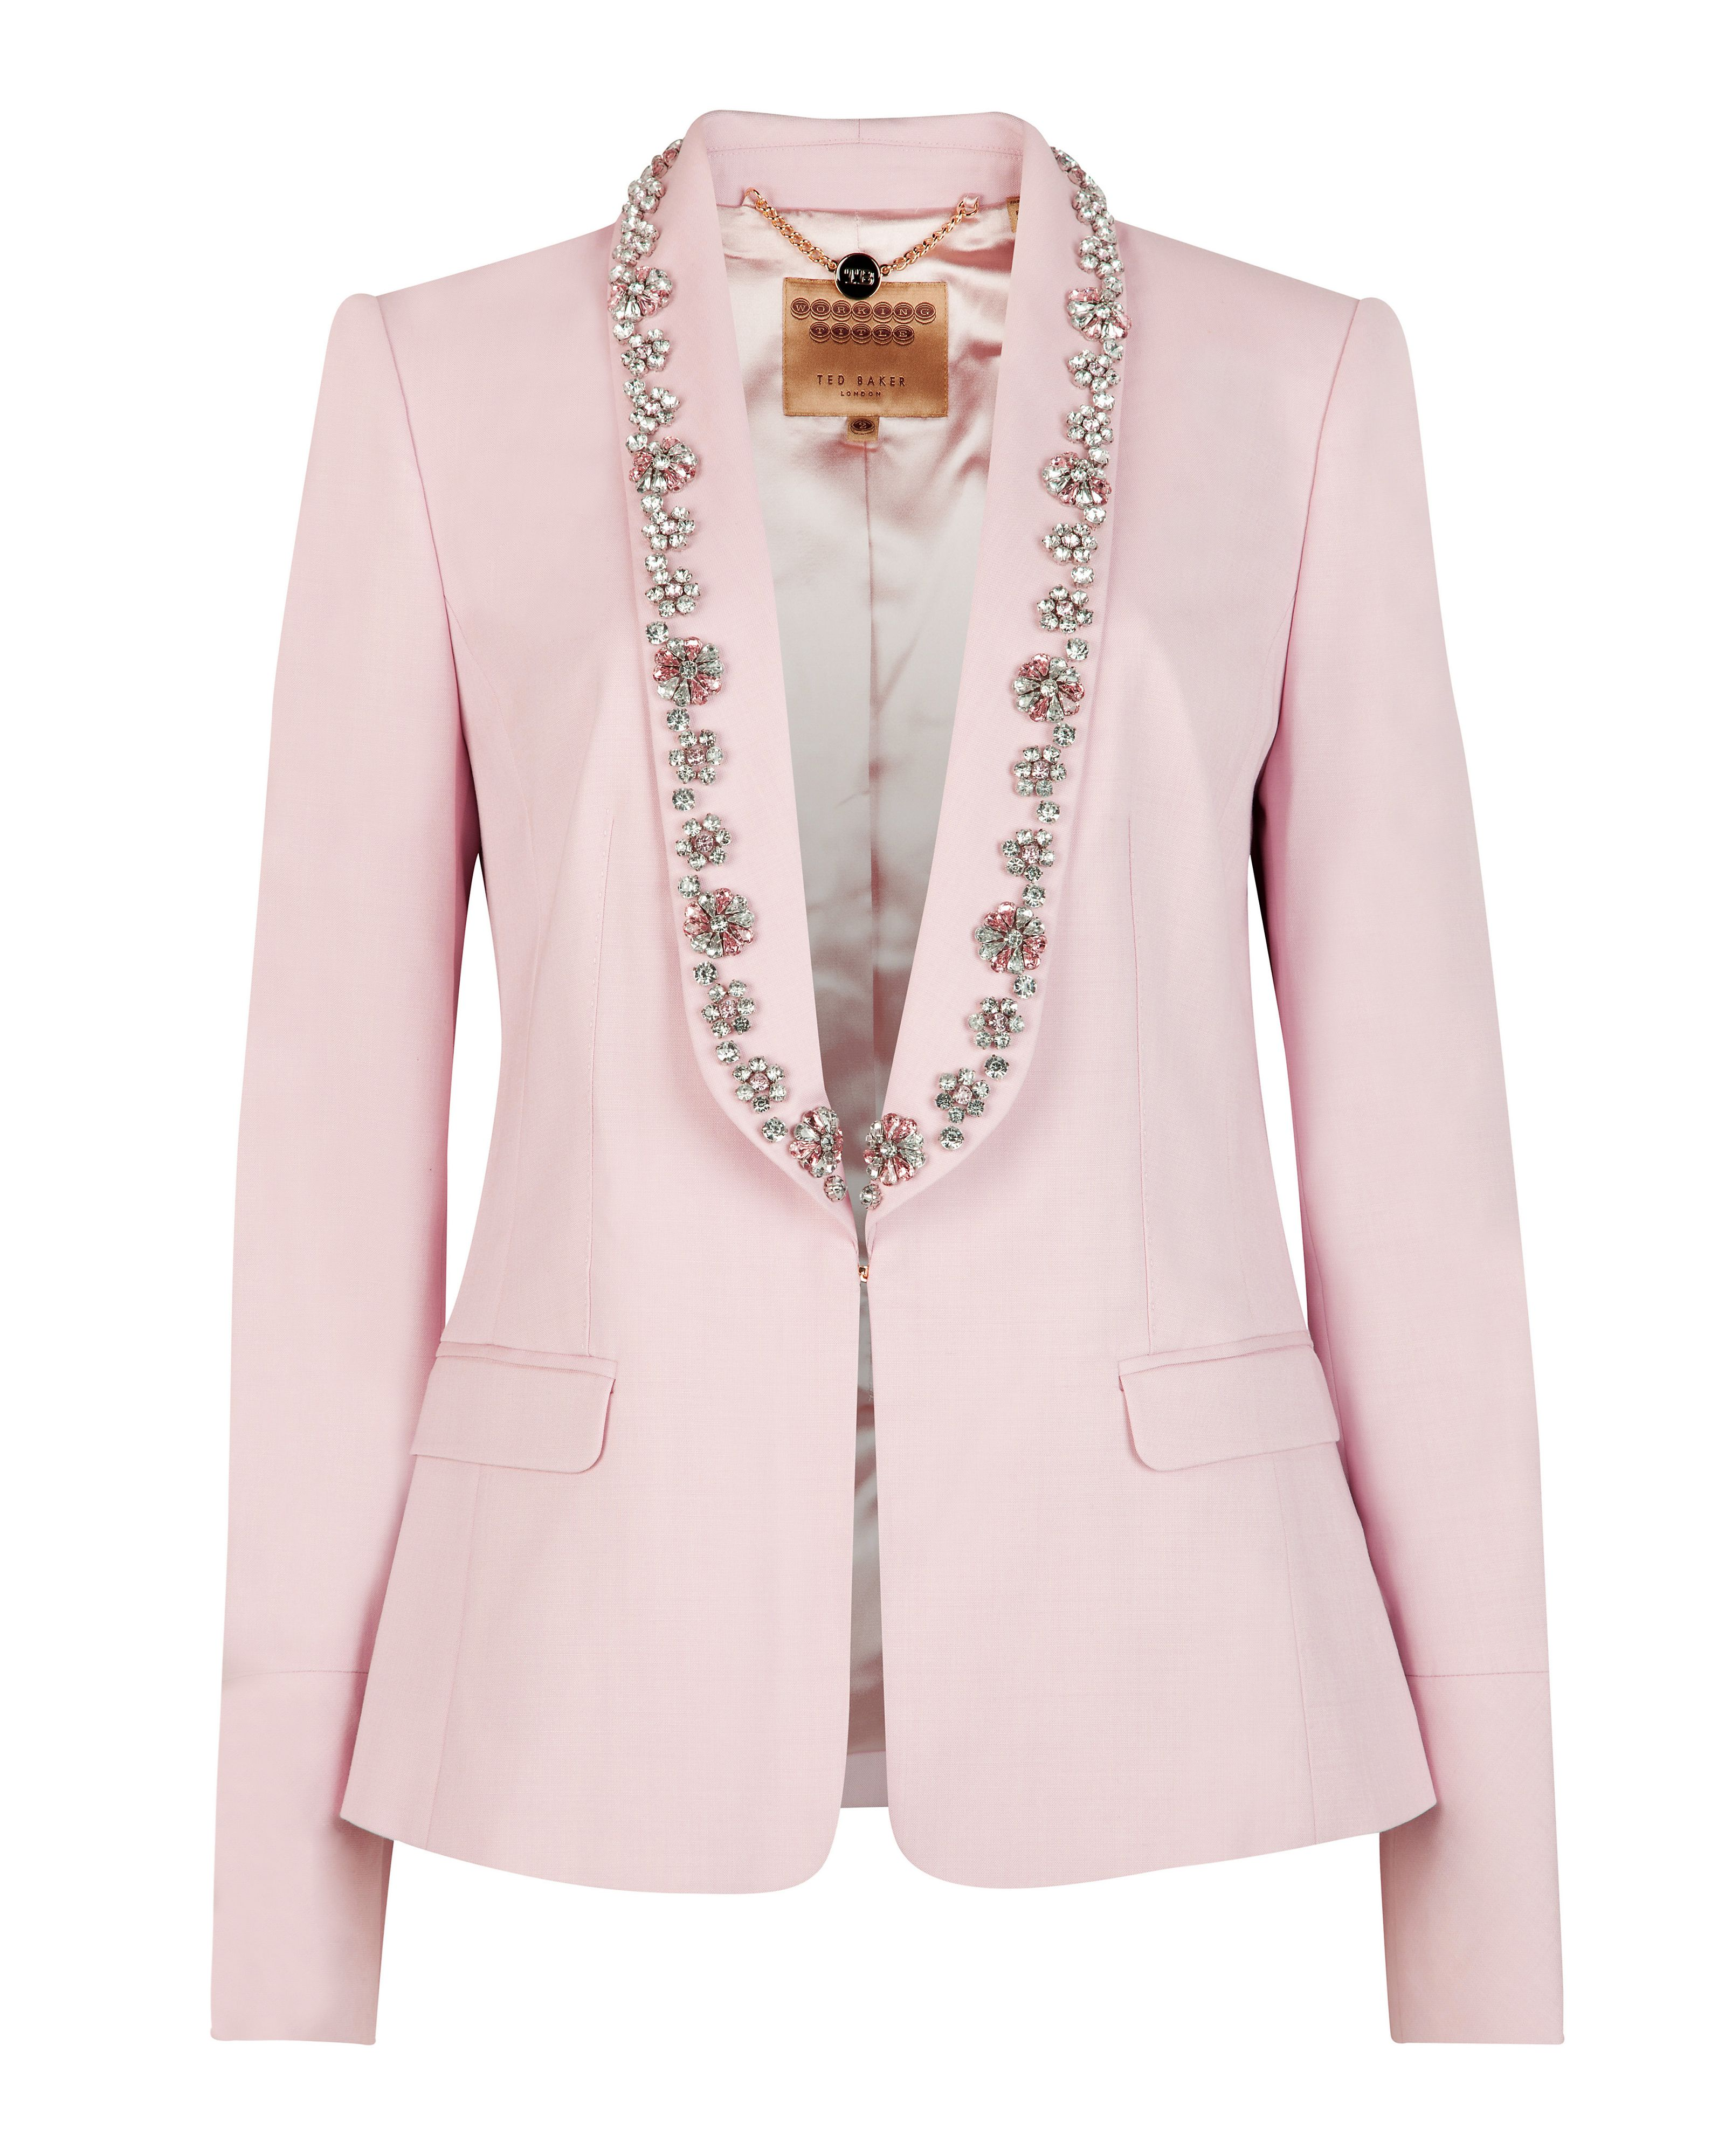 Kikie embellished suit jacket